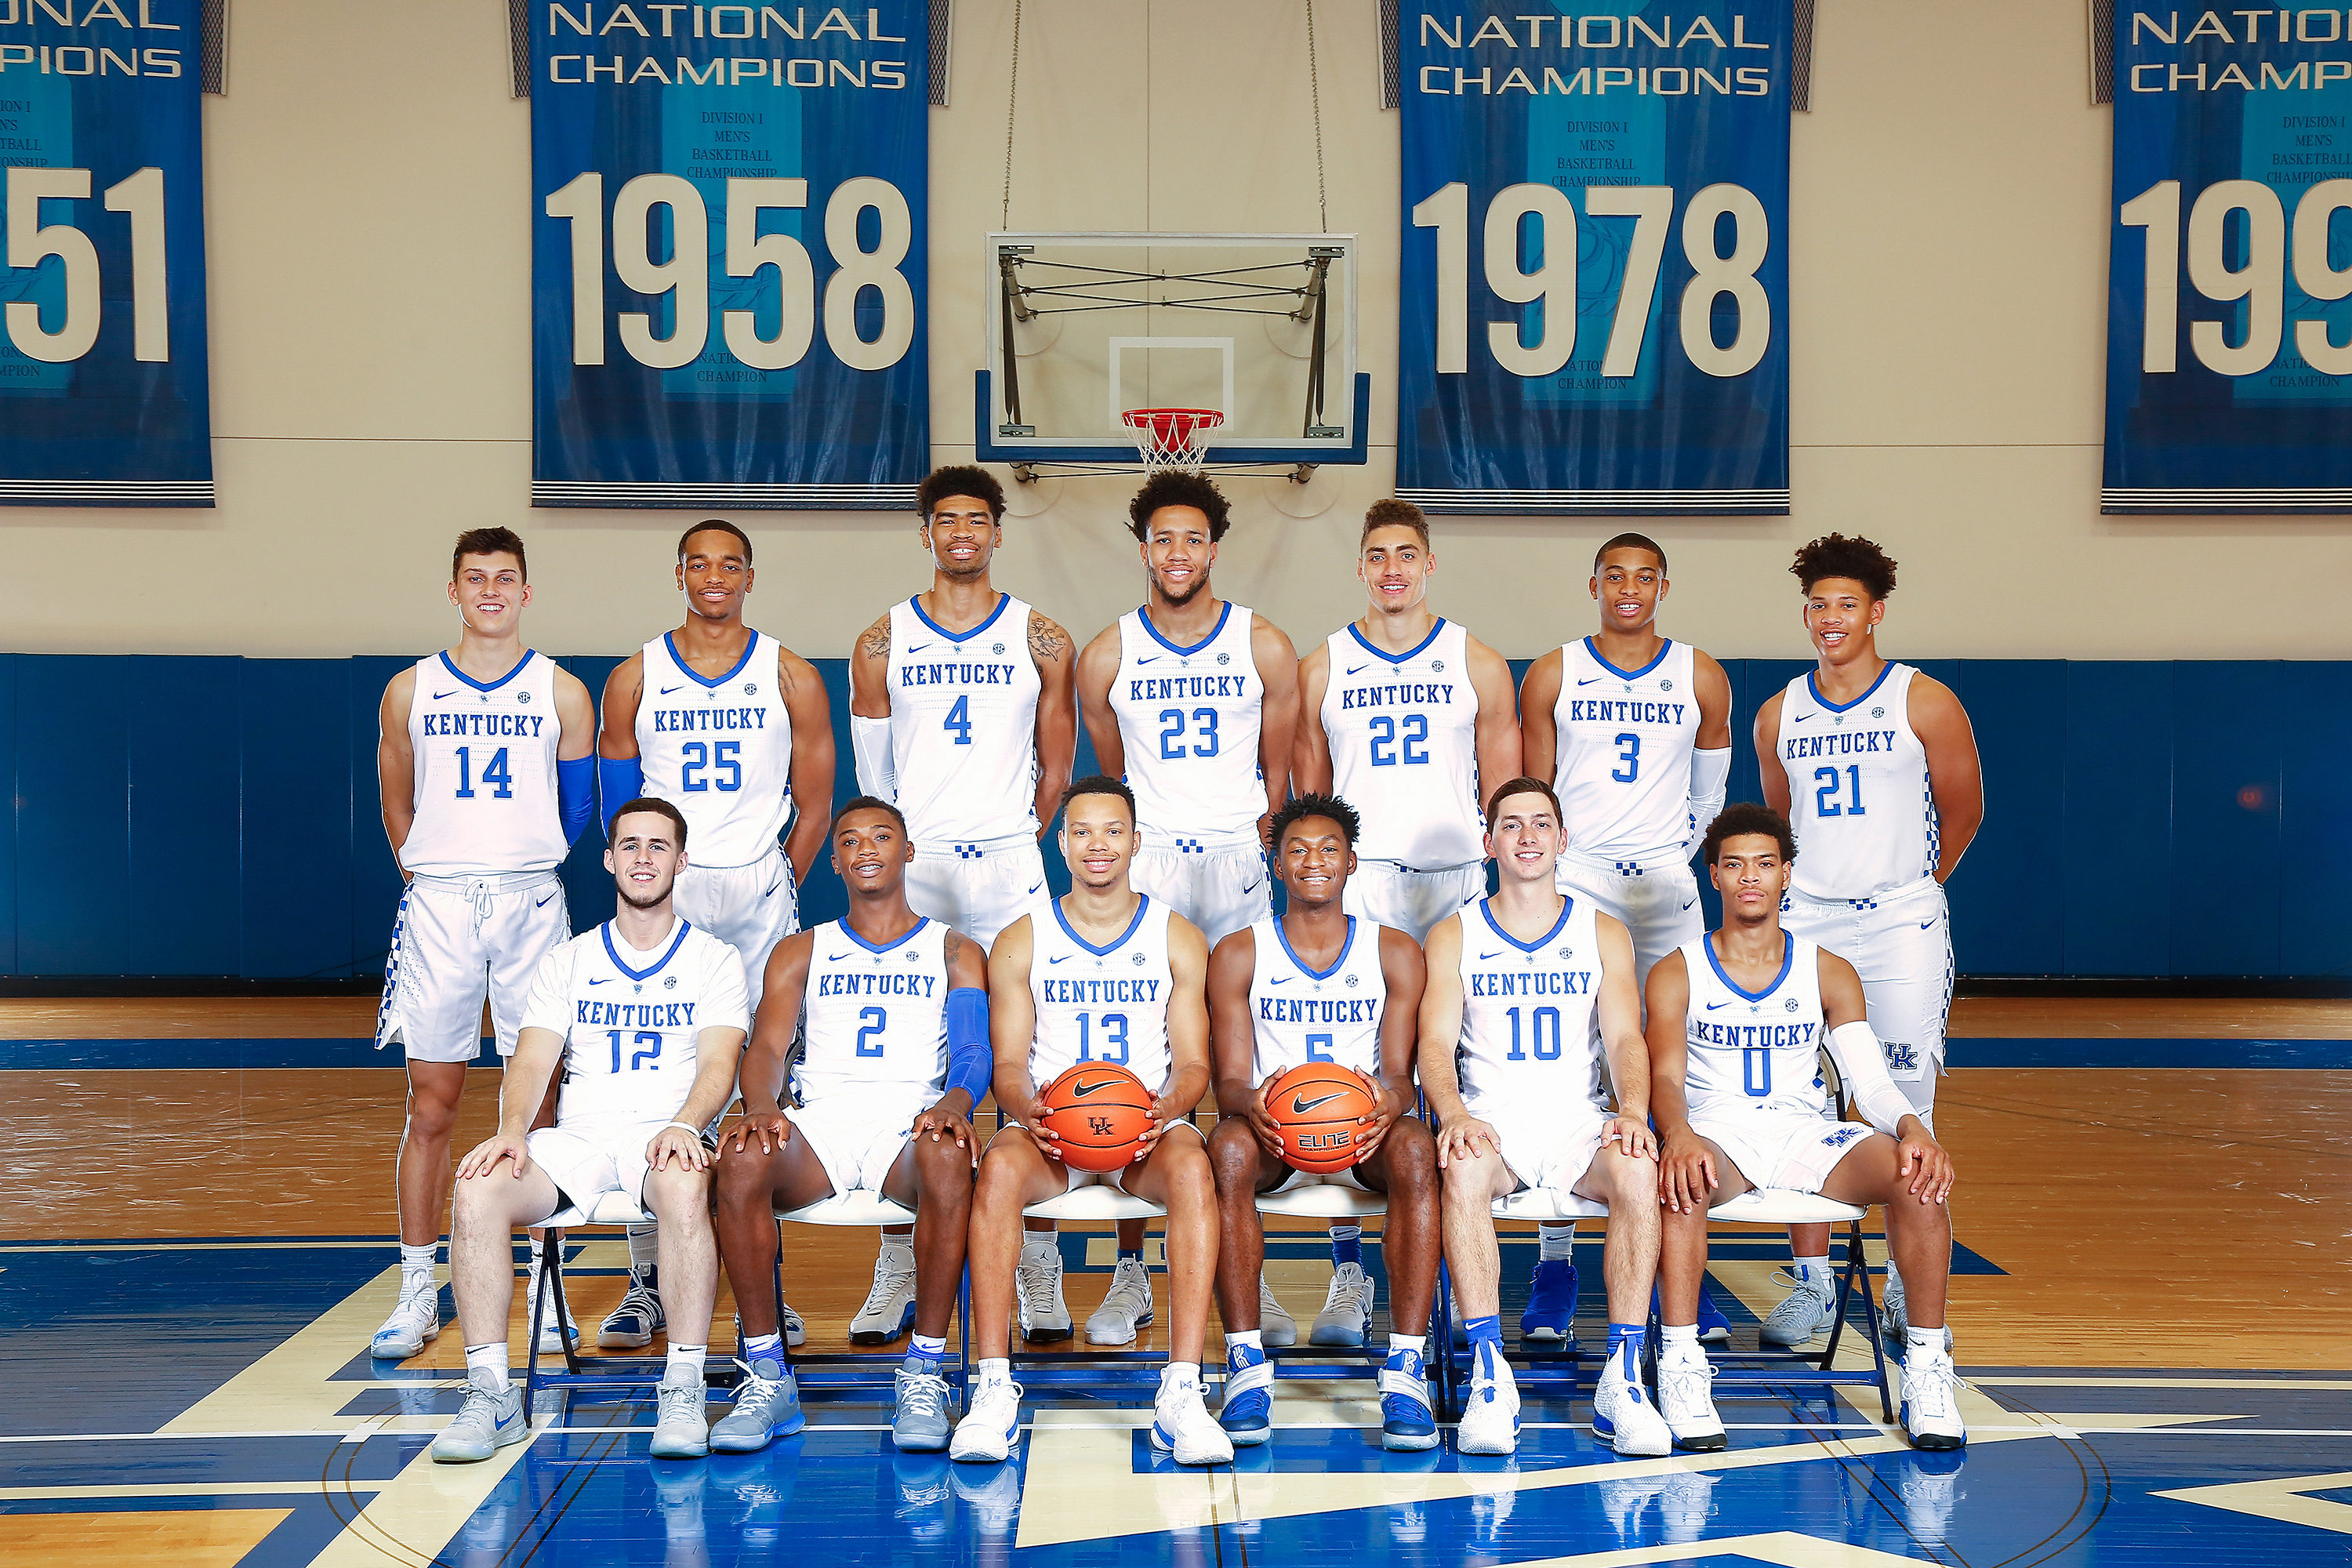 Kentucky Basketball 2018 19 Photo Day: University Of Kentucky Mens Basketball 2018-19